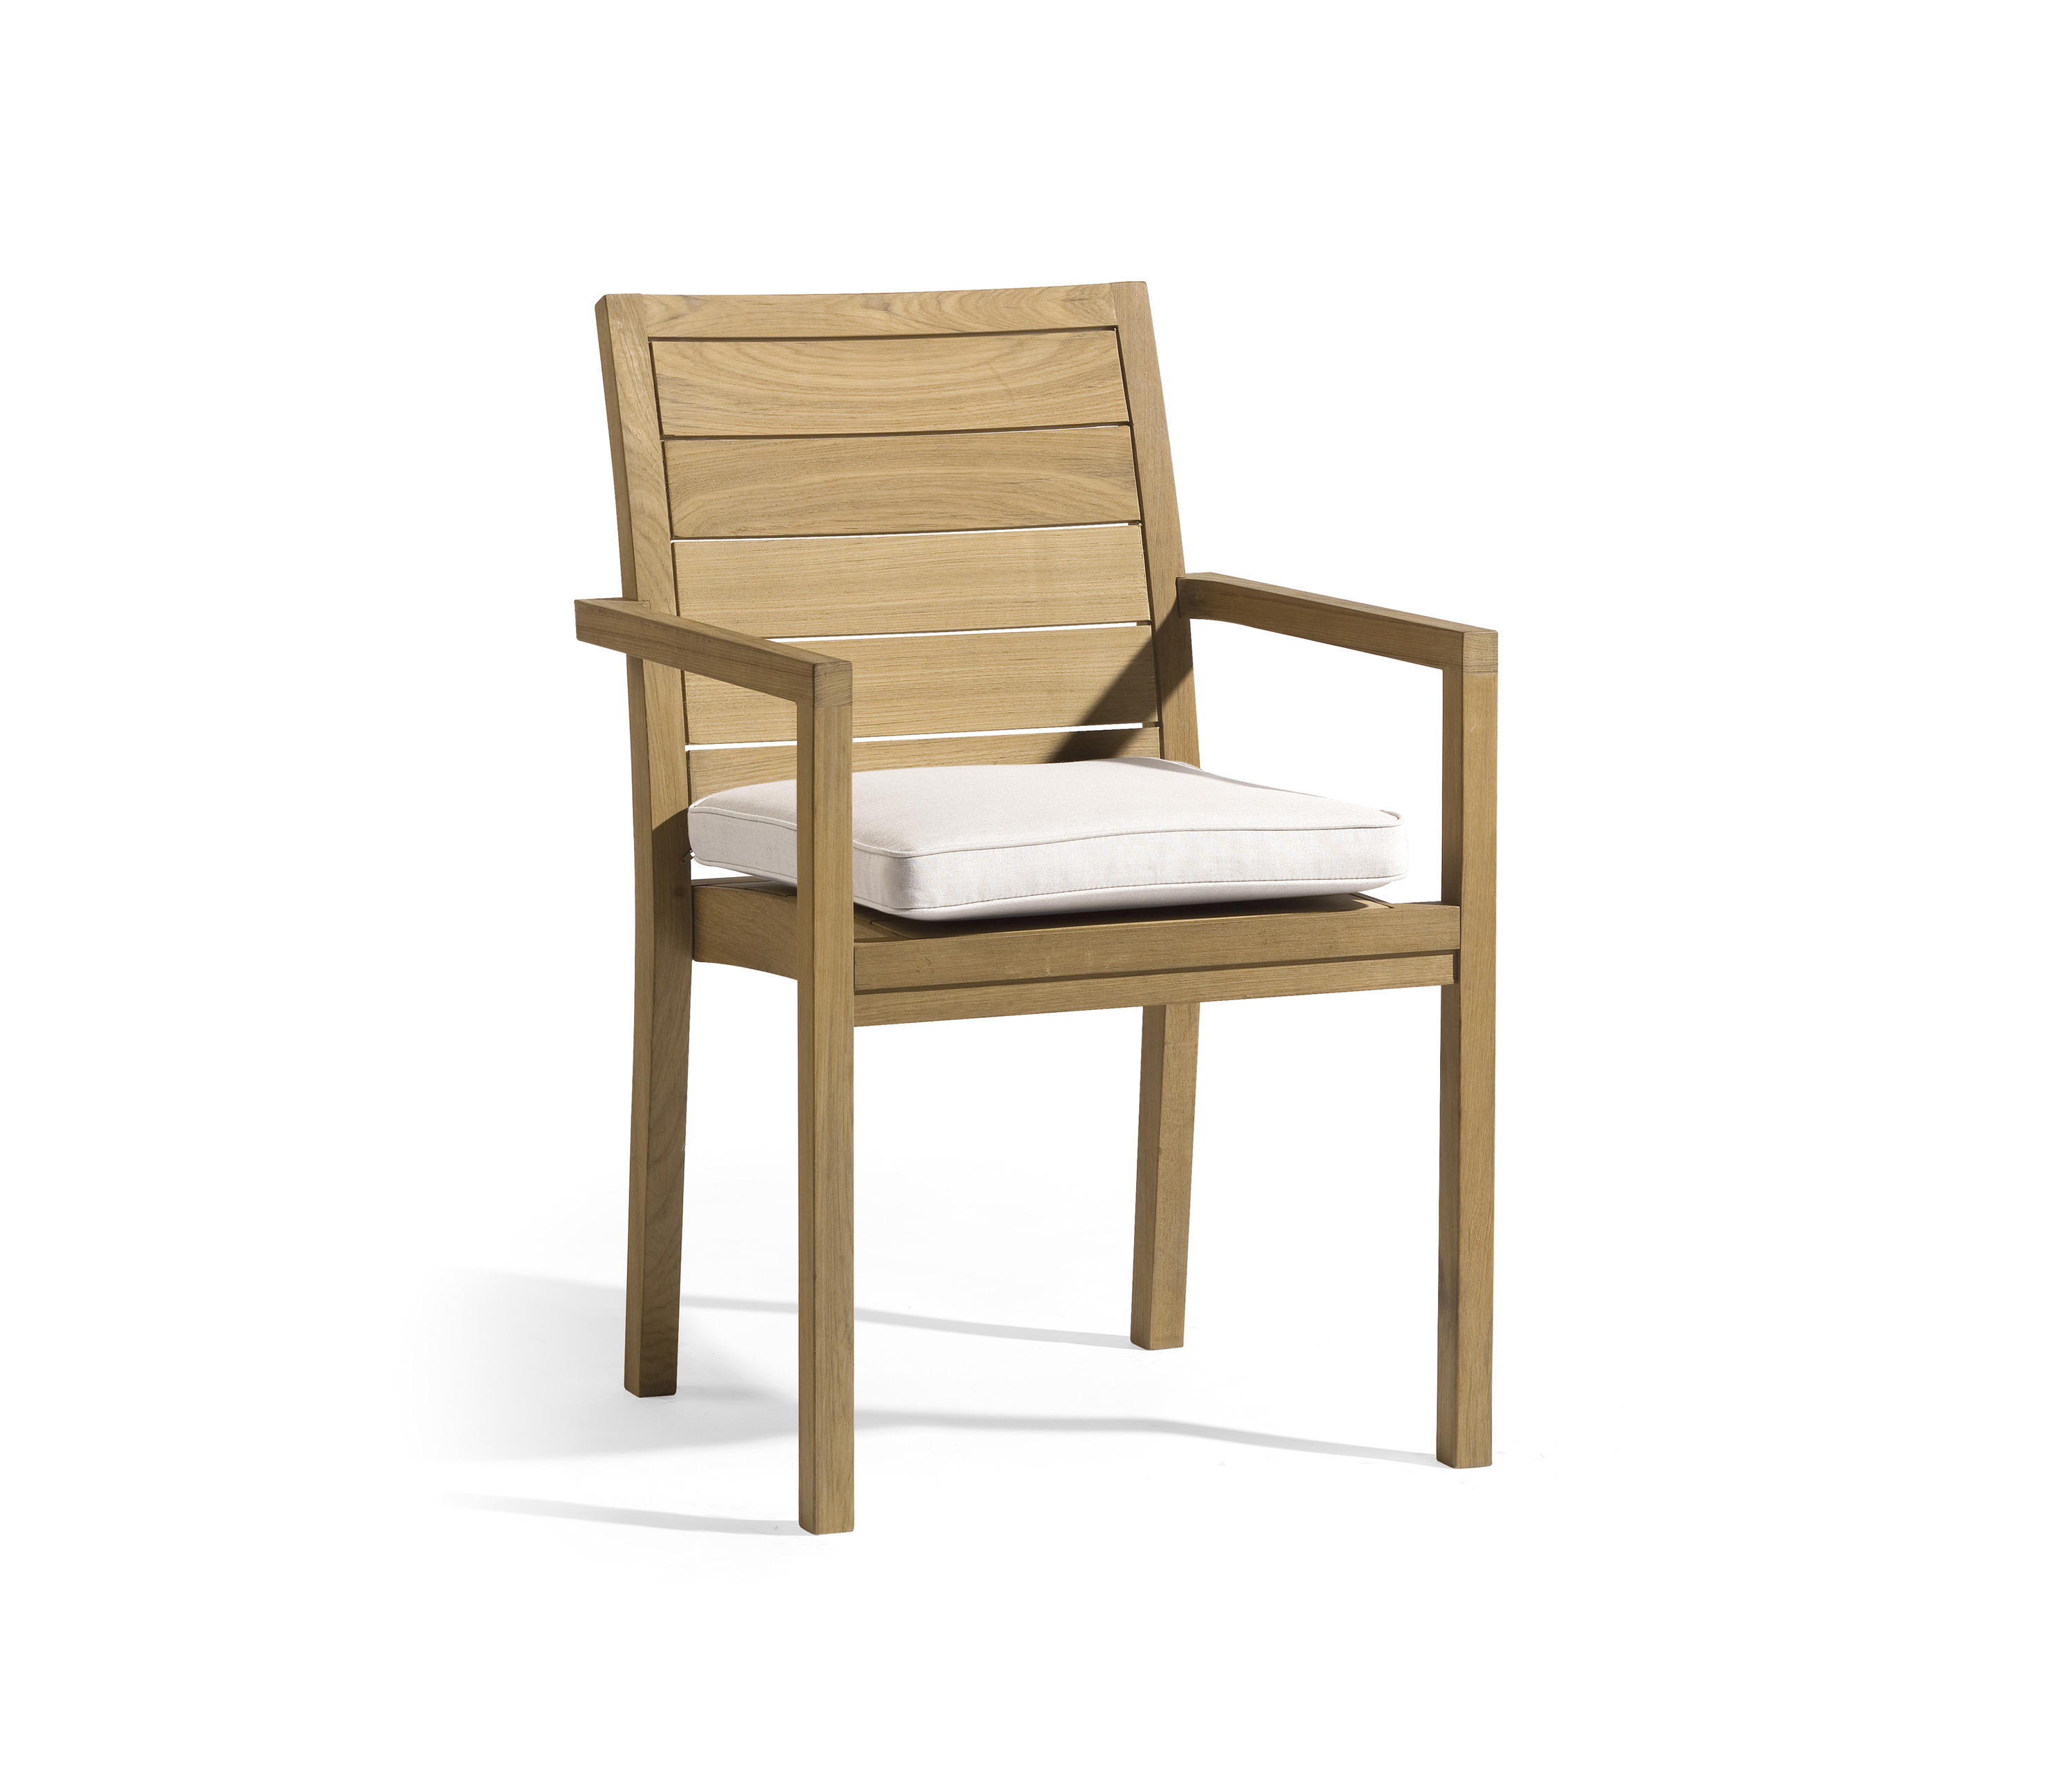 SIENA SQUARE CHAIR Garden Chairs From Manutti